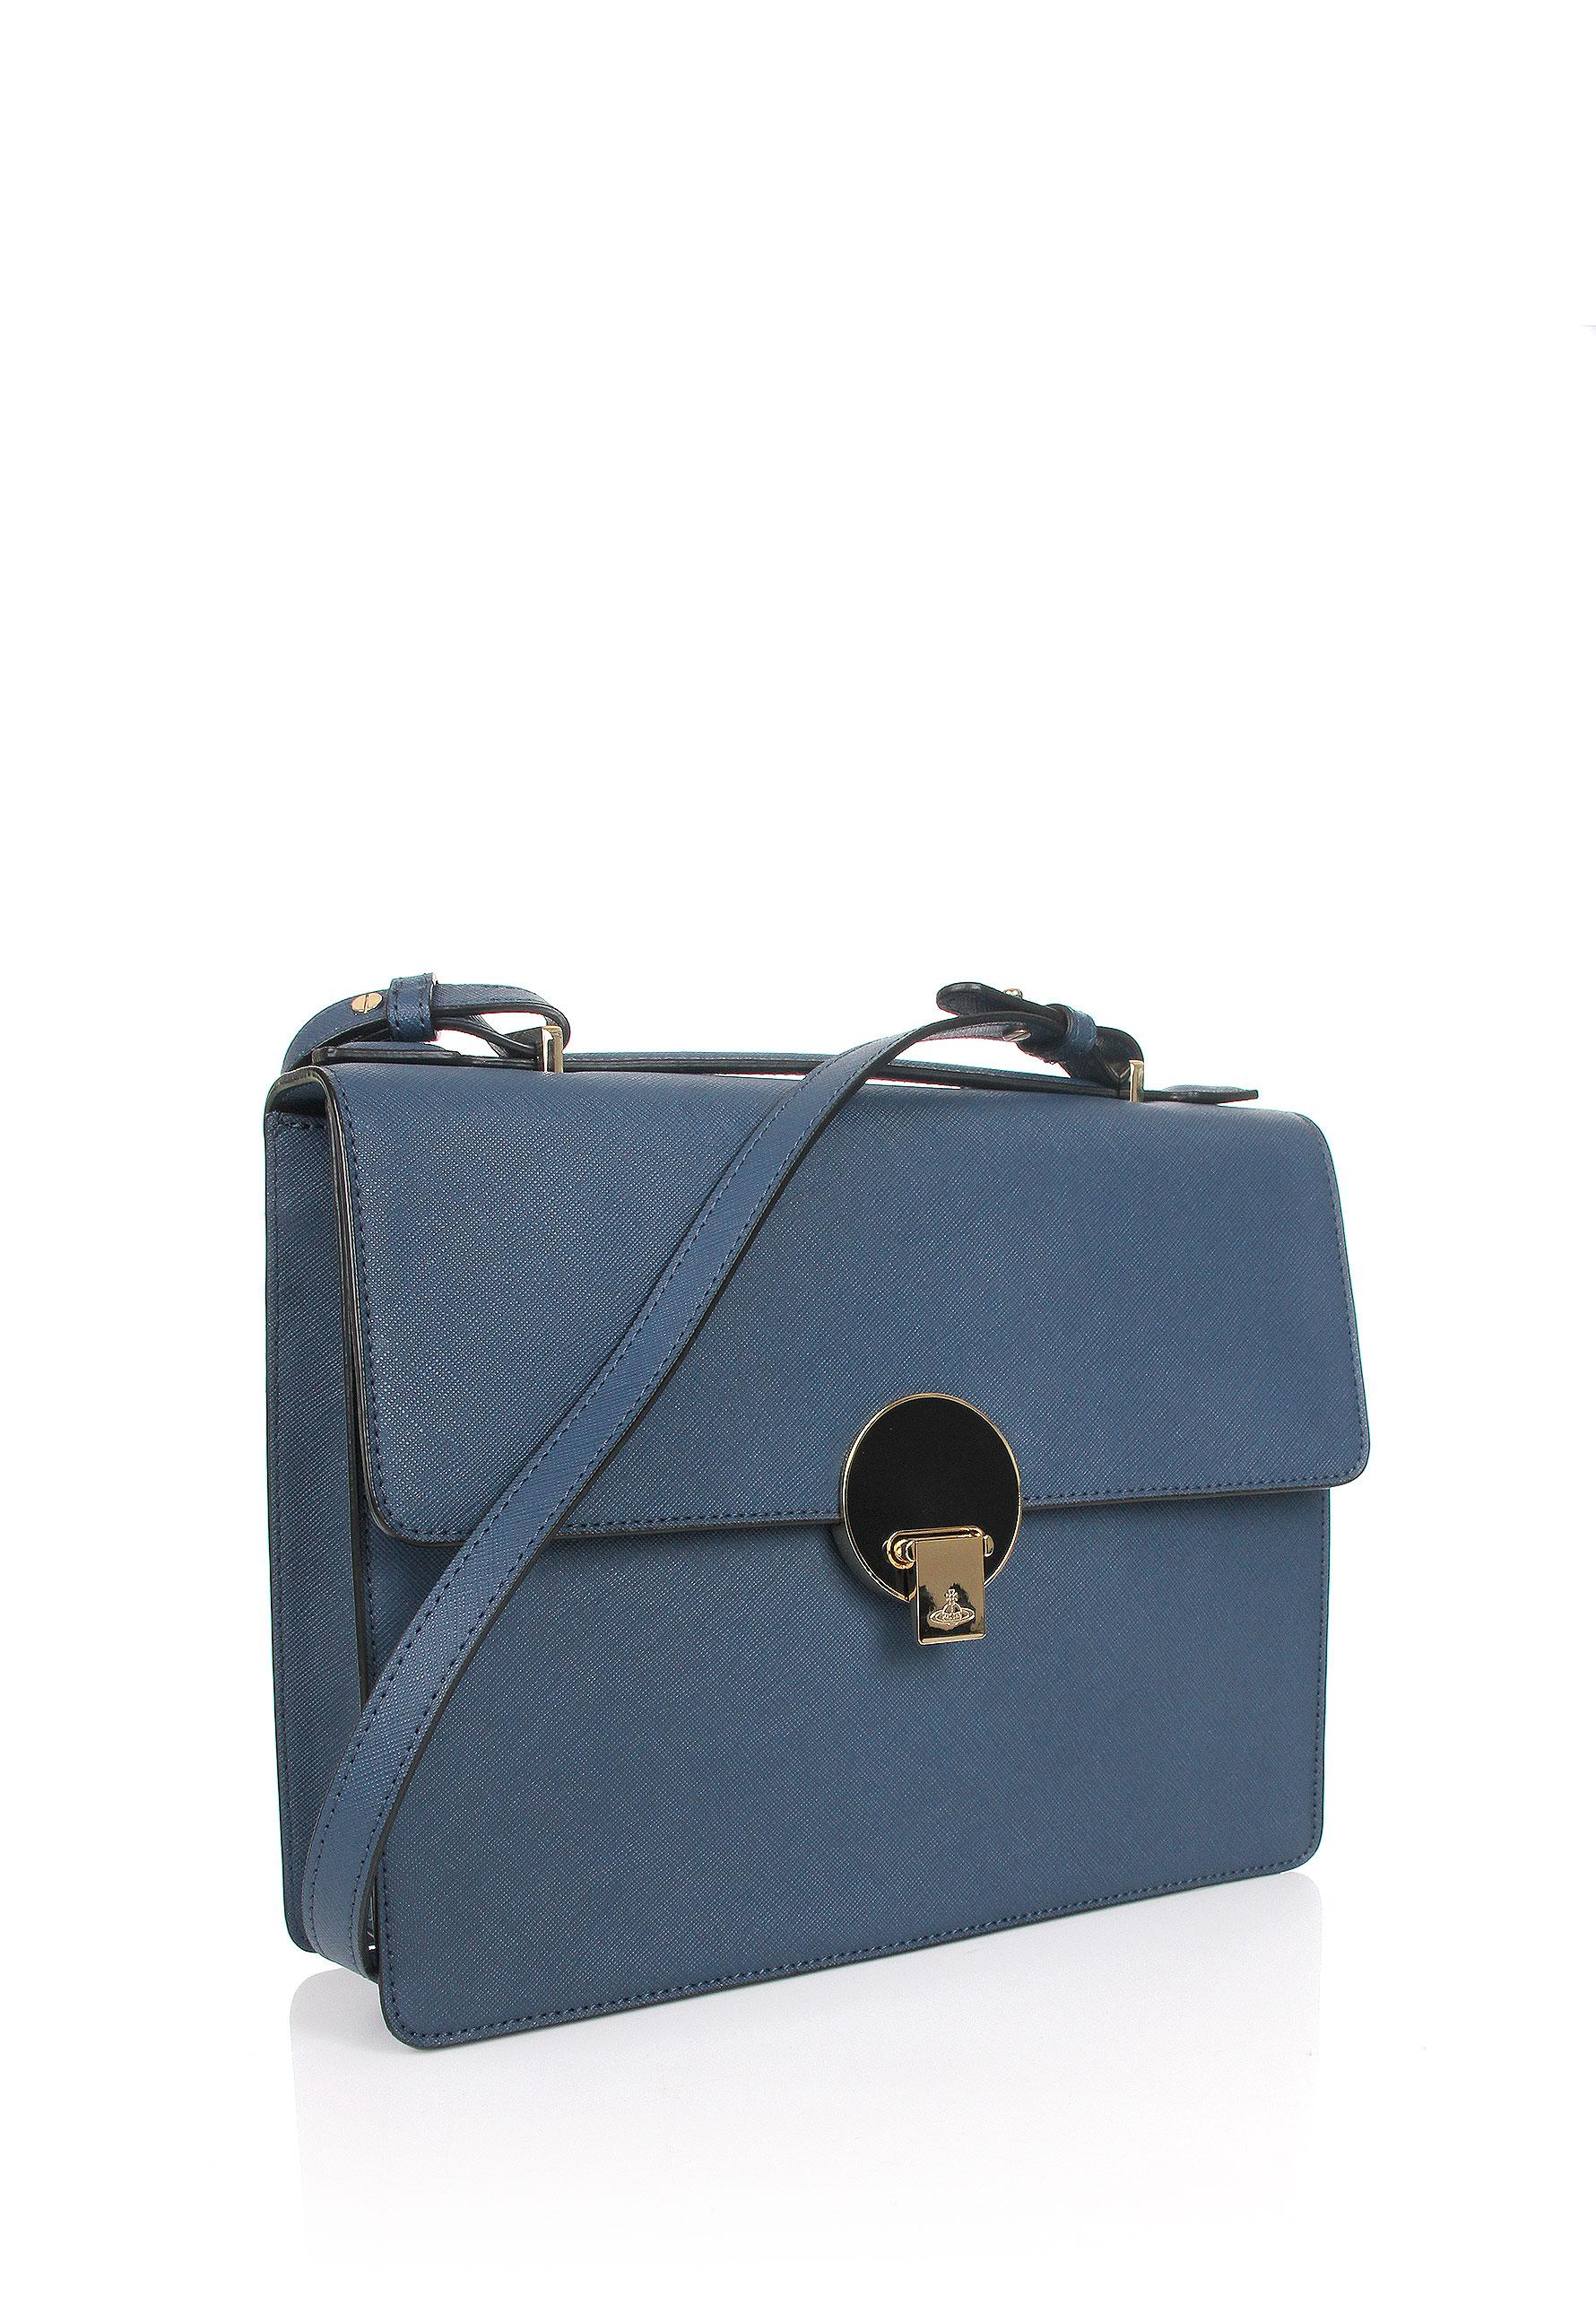 ad8c635c0a3 Vivienne Westwood Opio Saffiano 131130 Medium Shoulder Bag Blue in ...